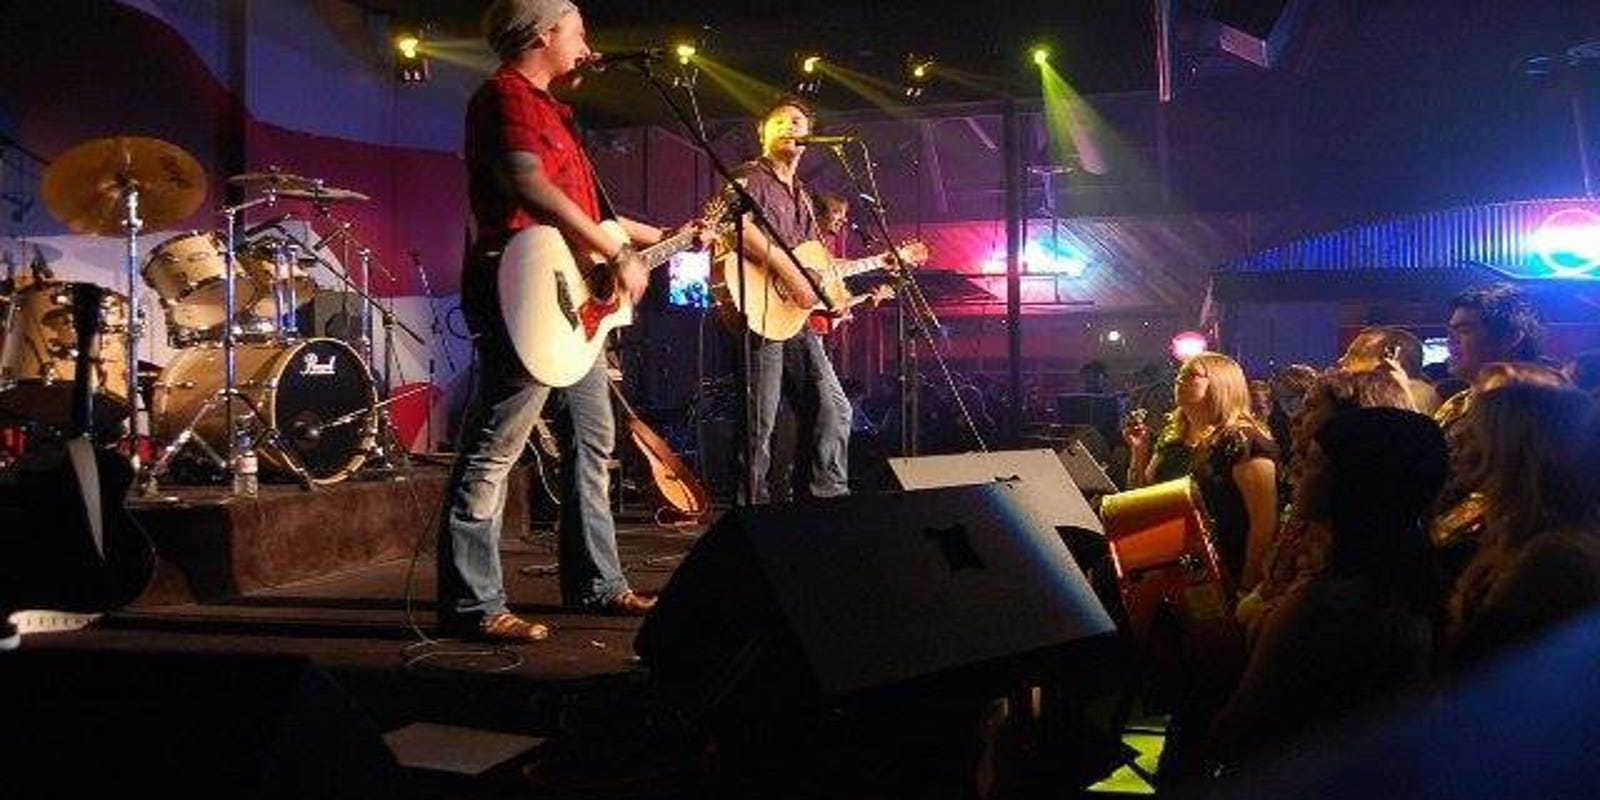 10 Restaurants With Live Music In Wv